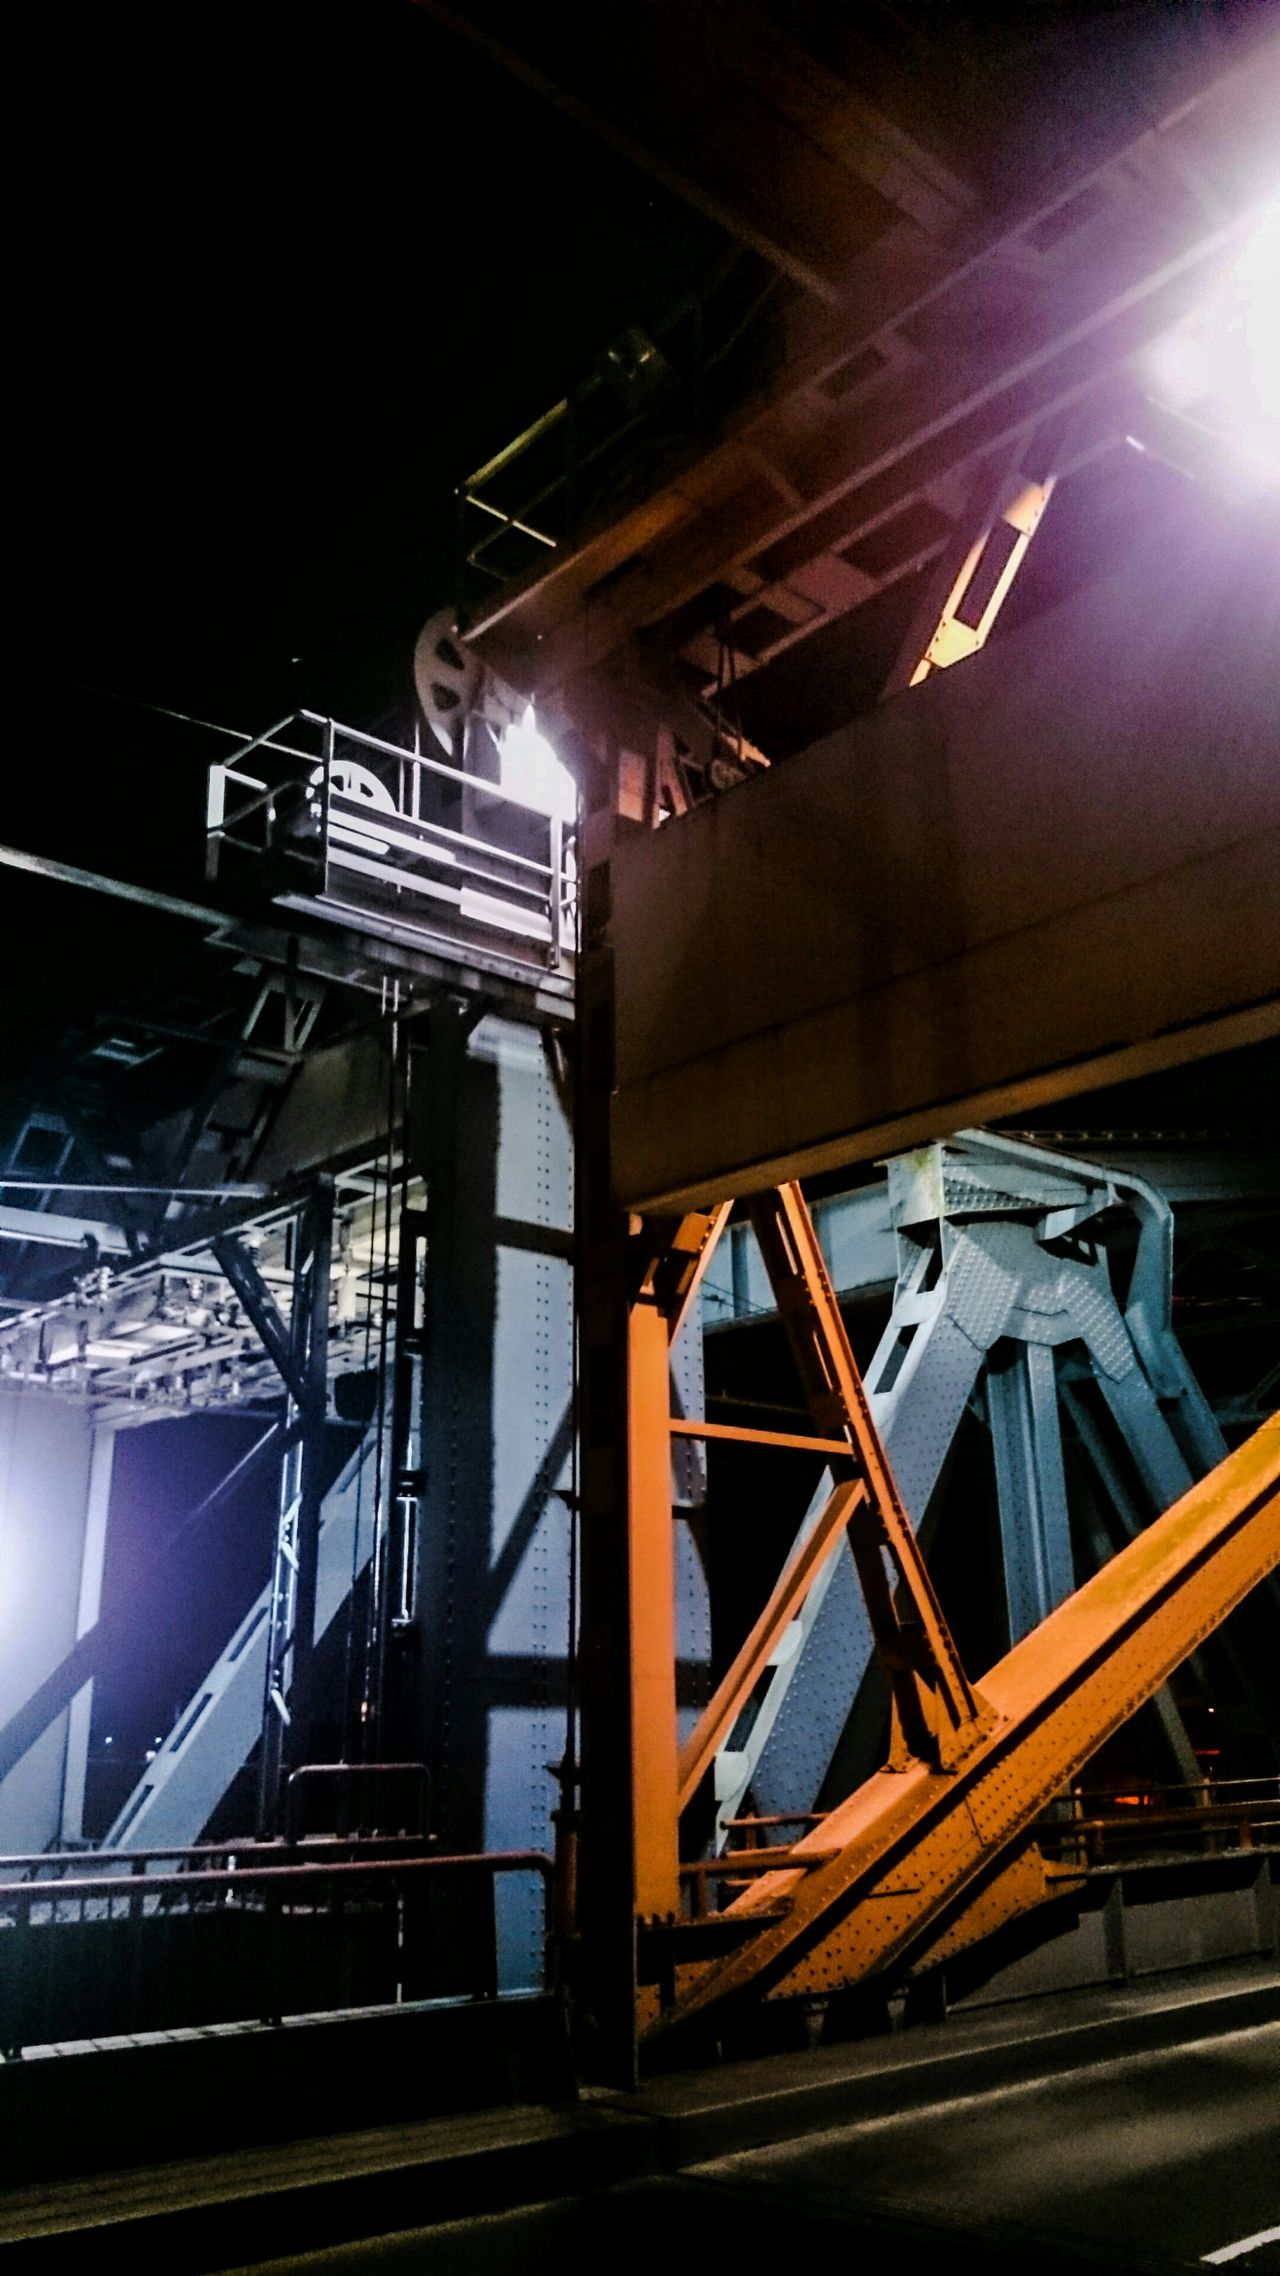 Night Photography, Details of an Old Bridge, Enjoying The View of Mechanism and Construction. Playing with Meccano :)